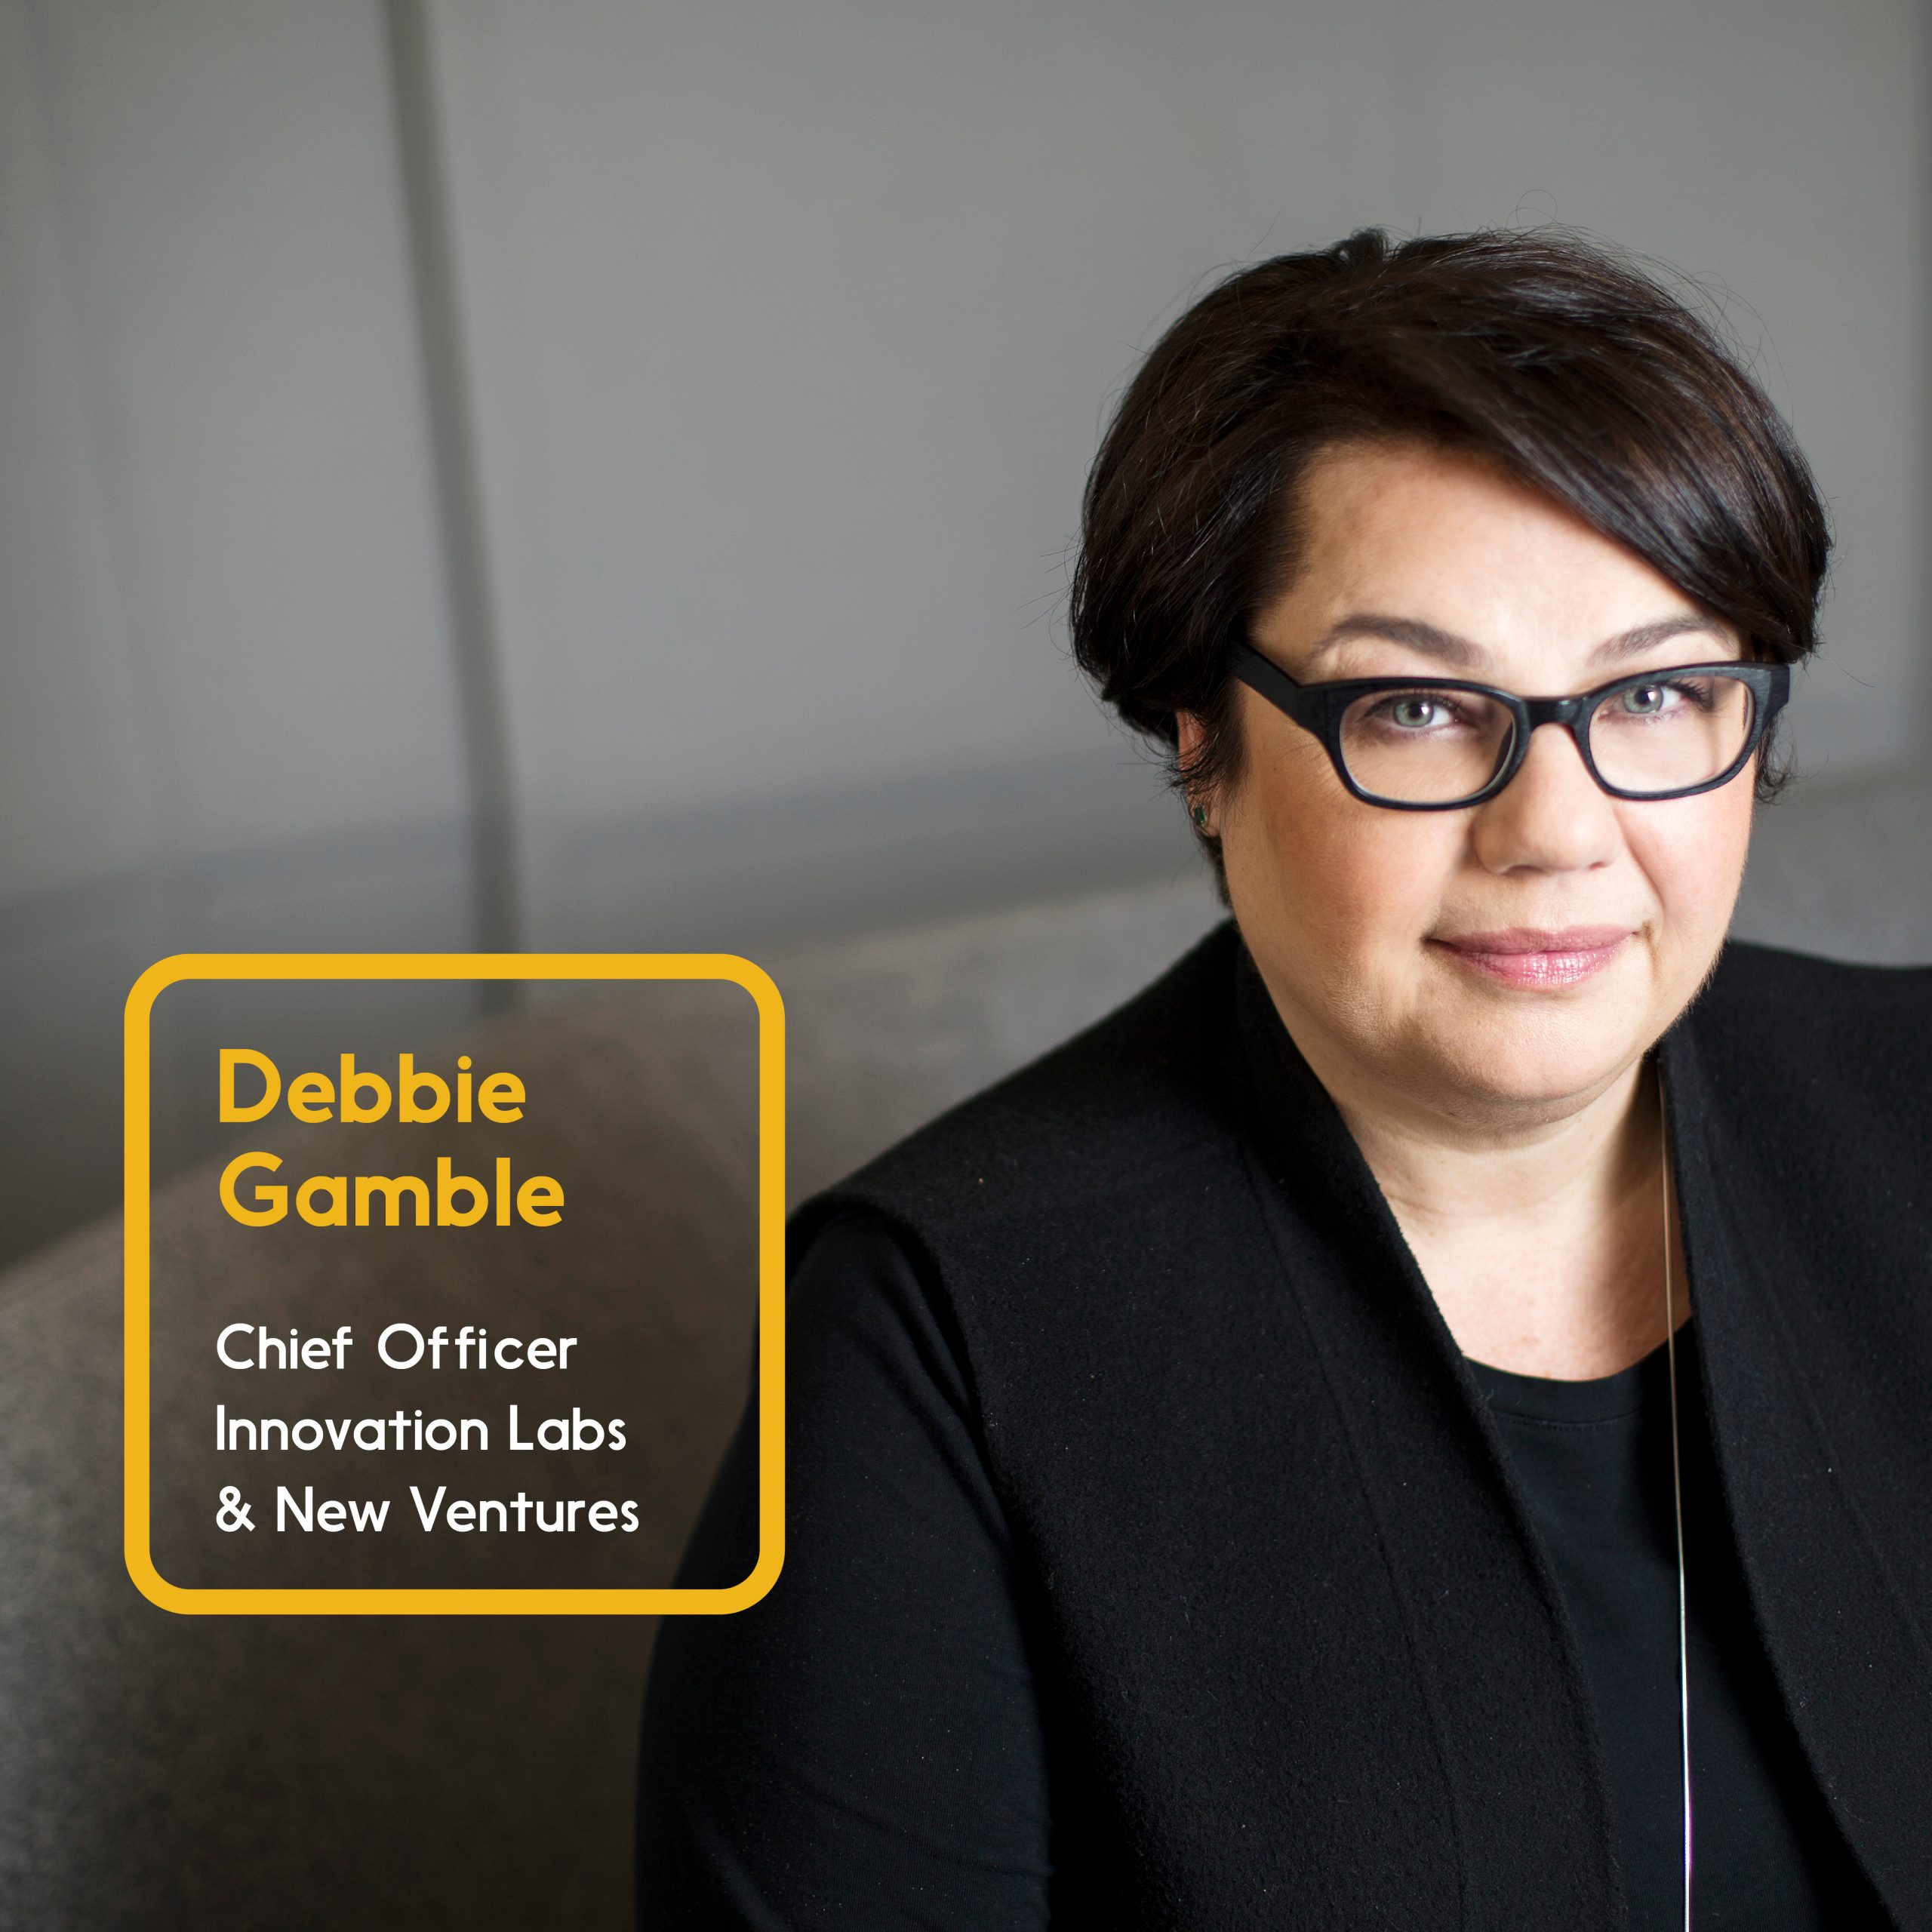 Debbie Gamble, Chief Officer, Innovation Labs and New Ventures